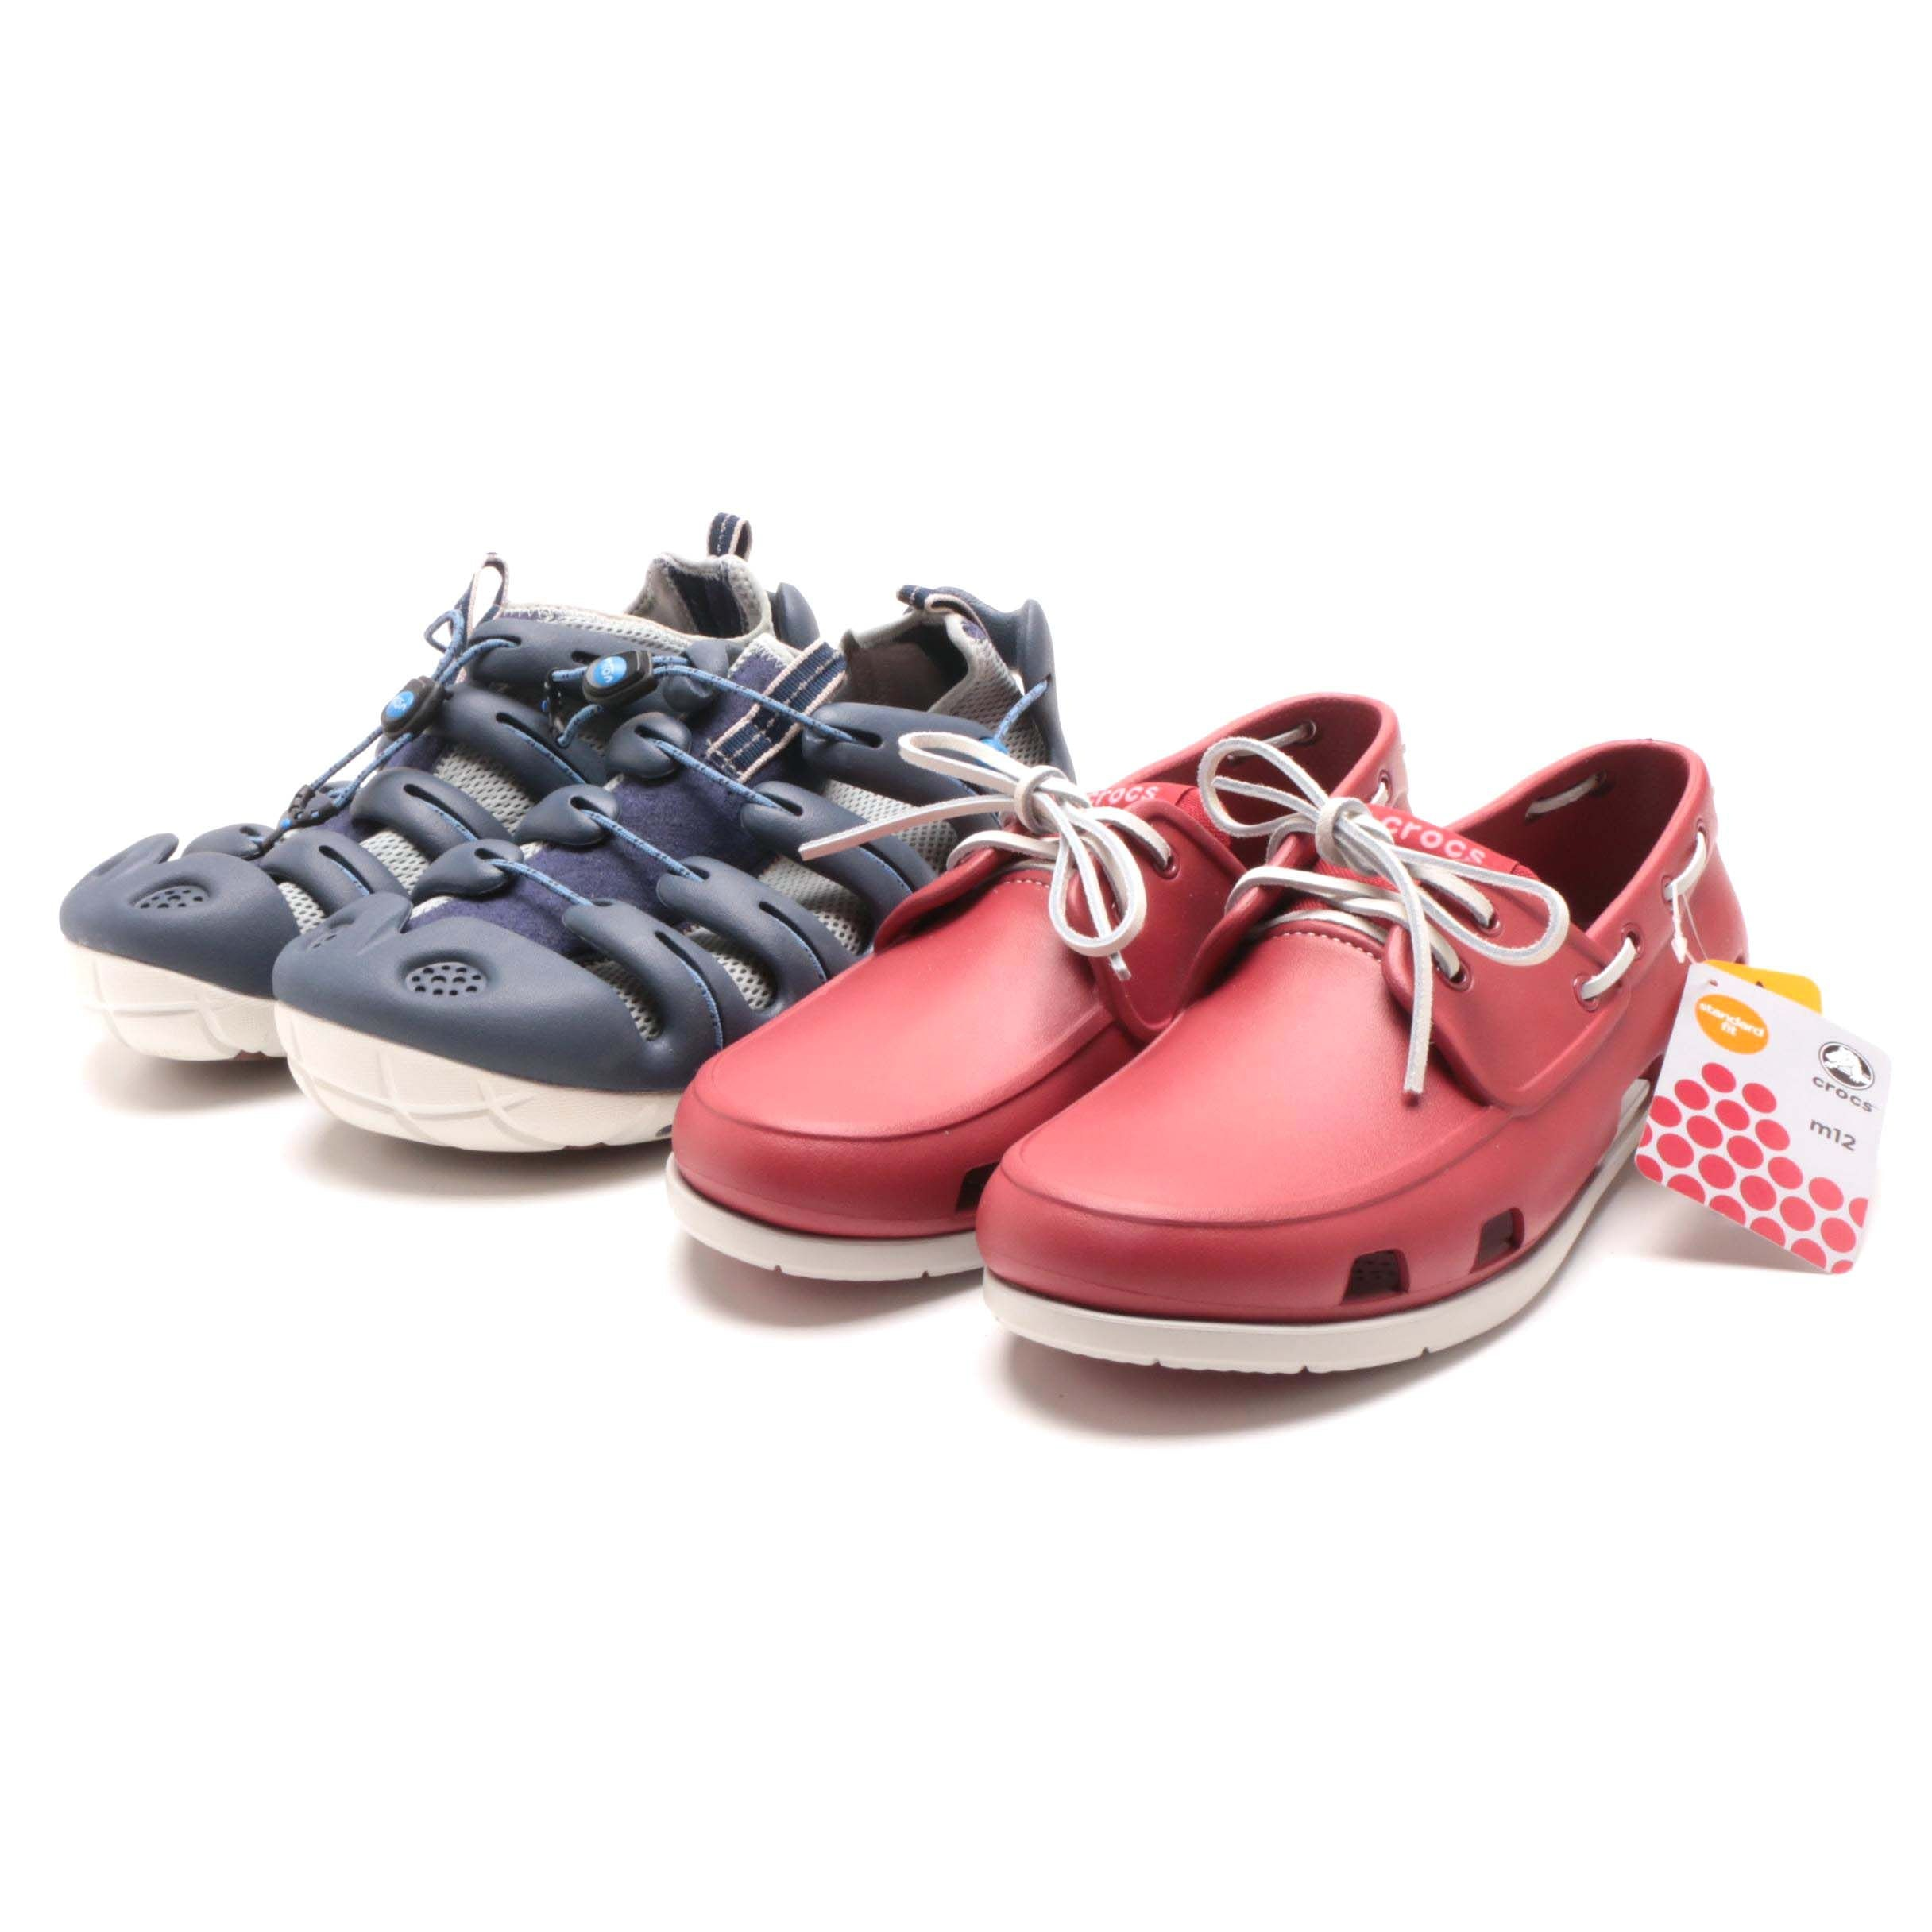 Crocs Beach Line Boat Shoe and Mion Shoes